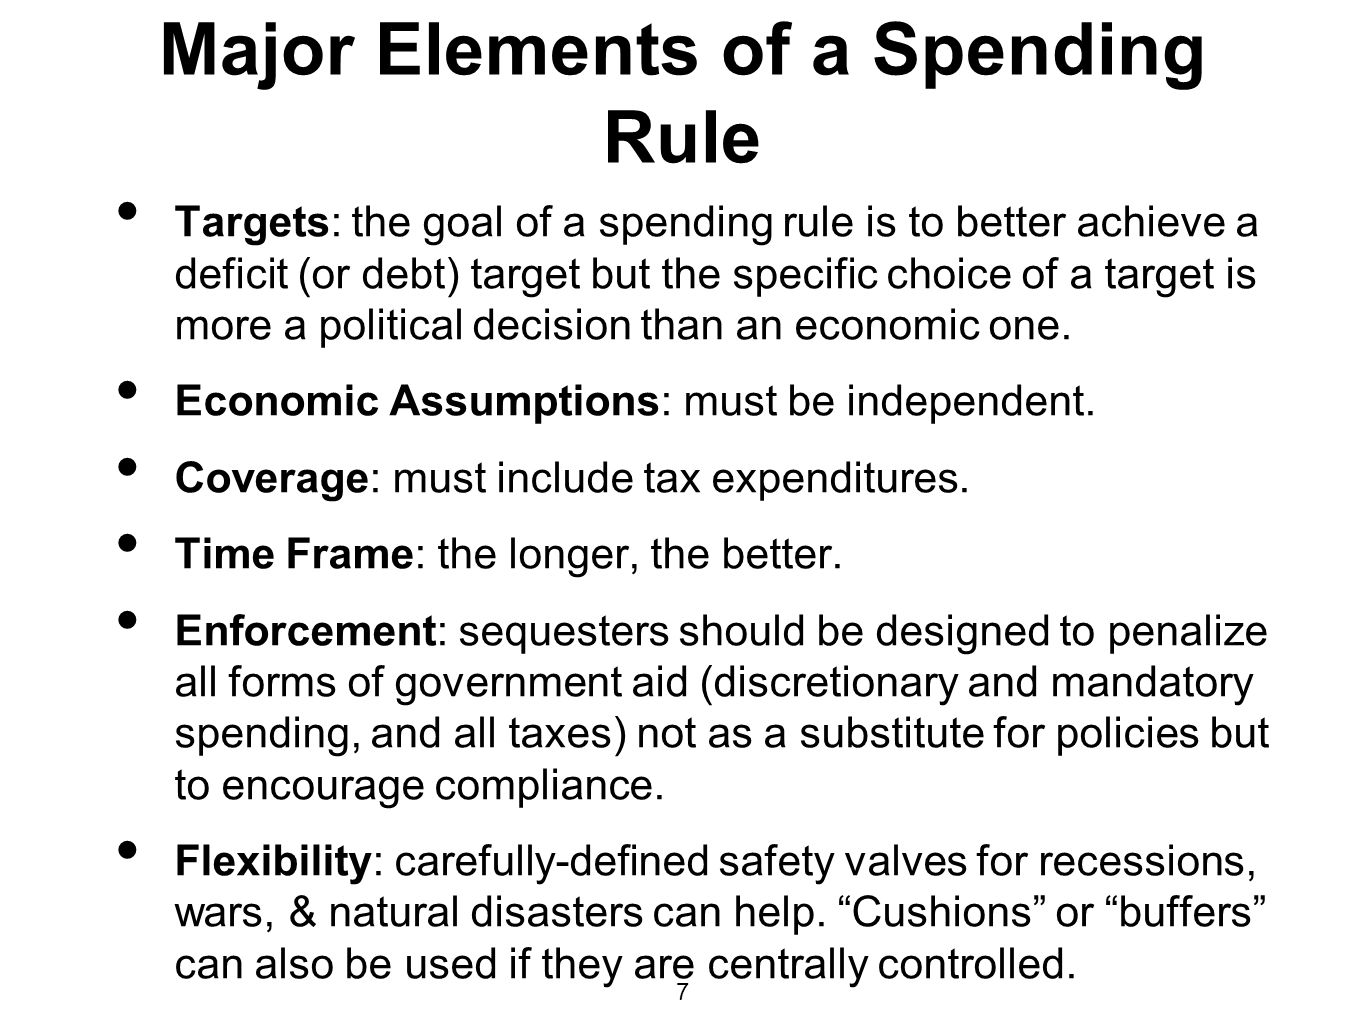 Major Elements of a Spending Rule